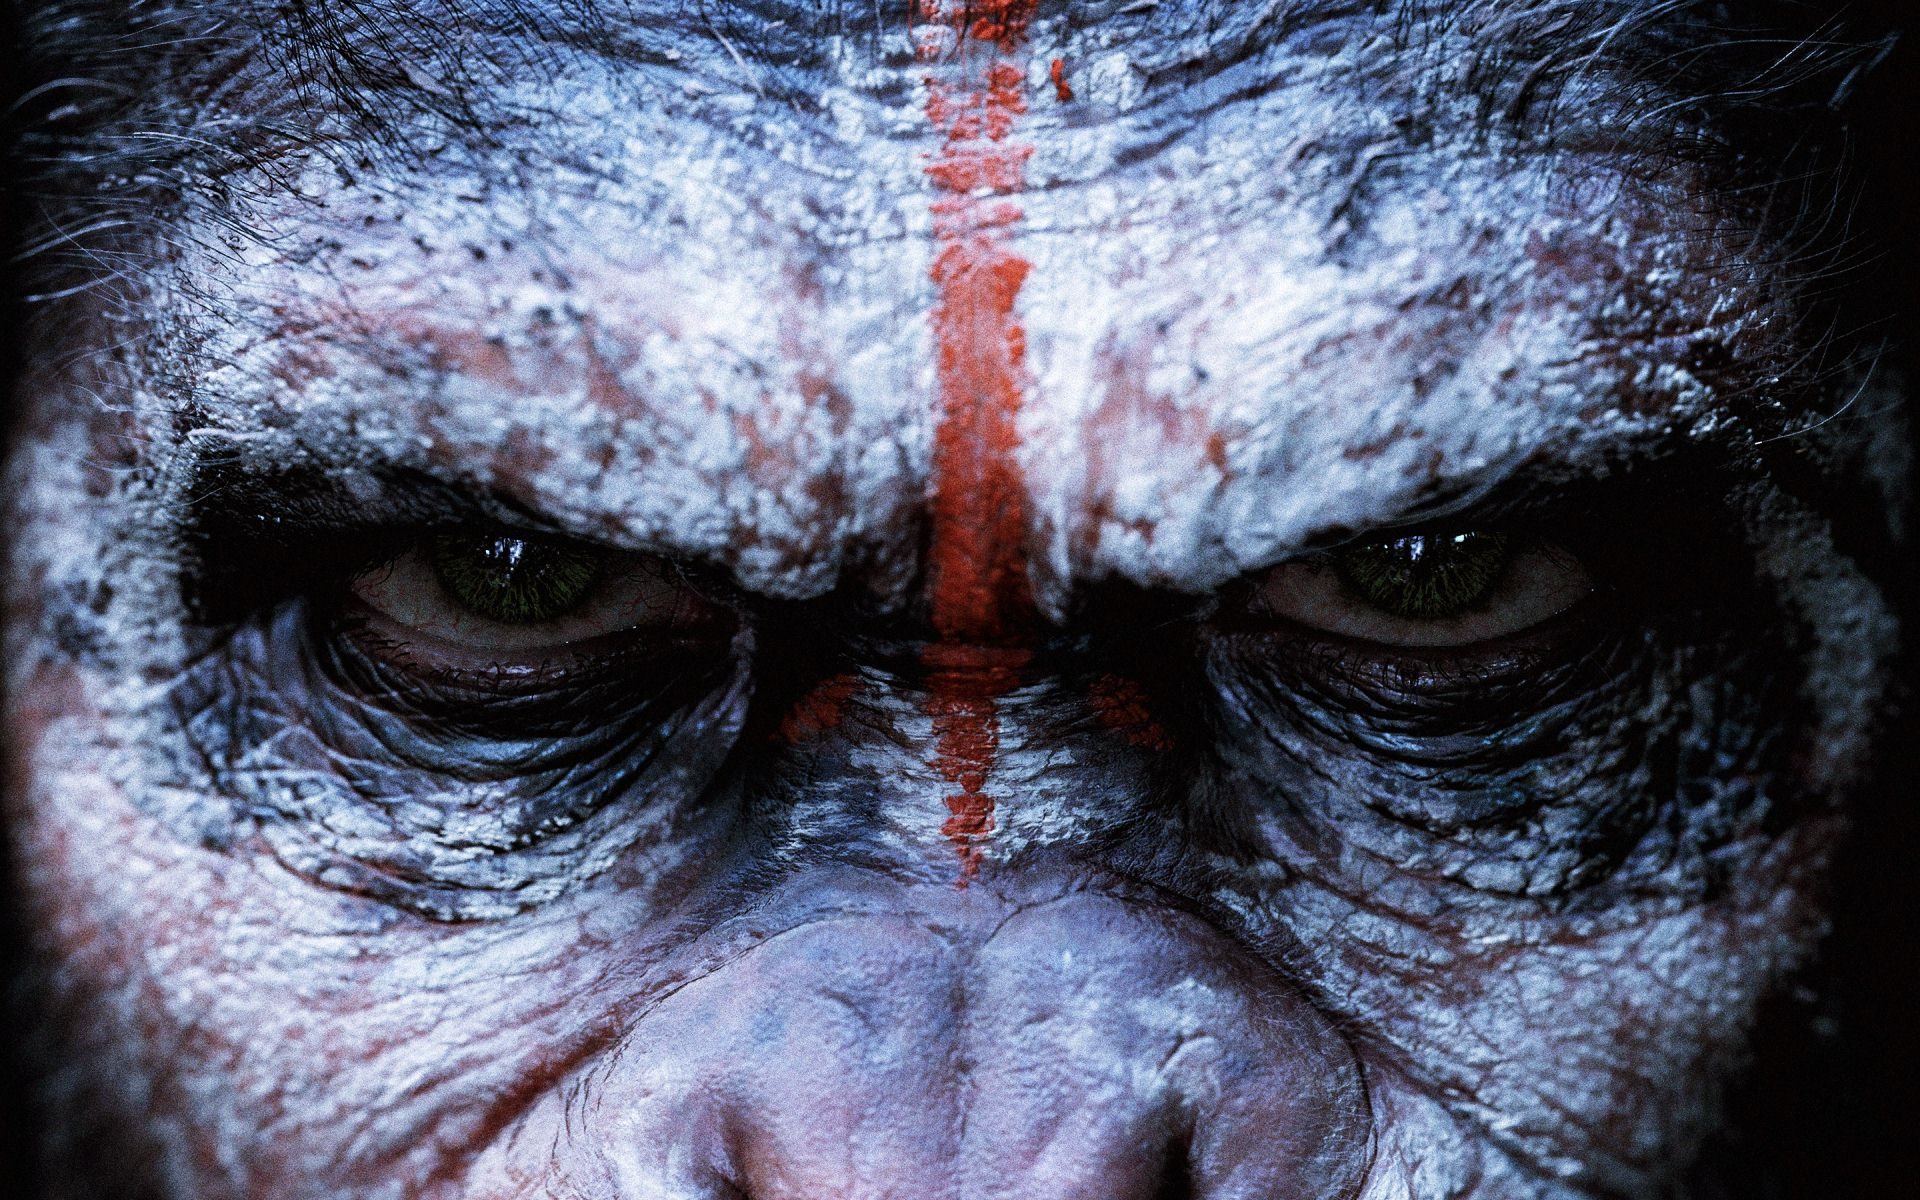 dawn-of-the-planet-of-the-apes-face-wallpaper-.jpg